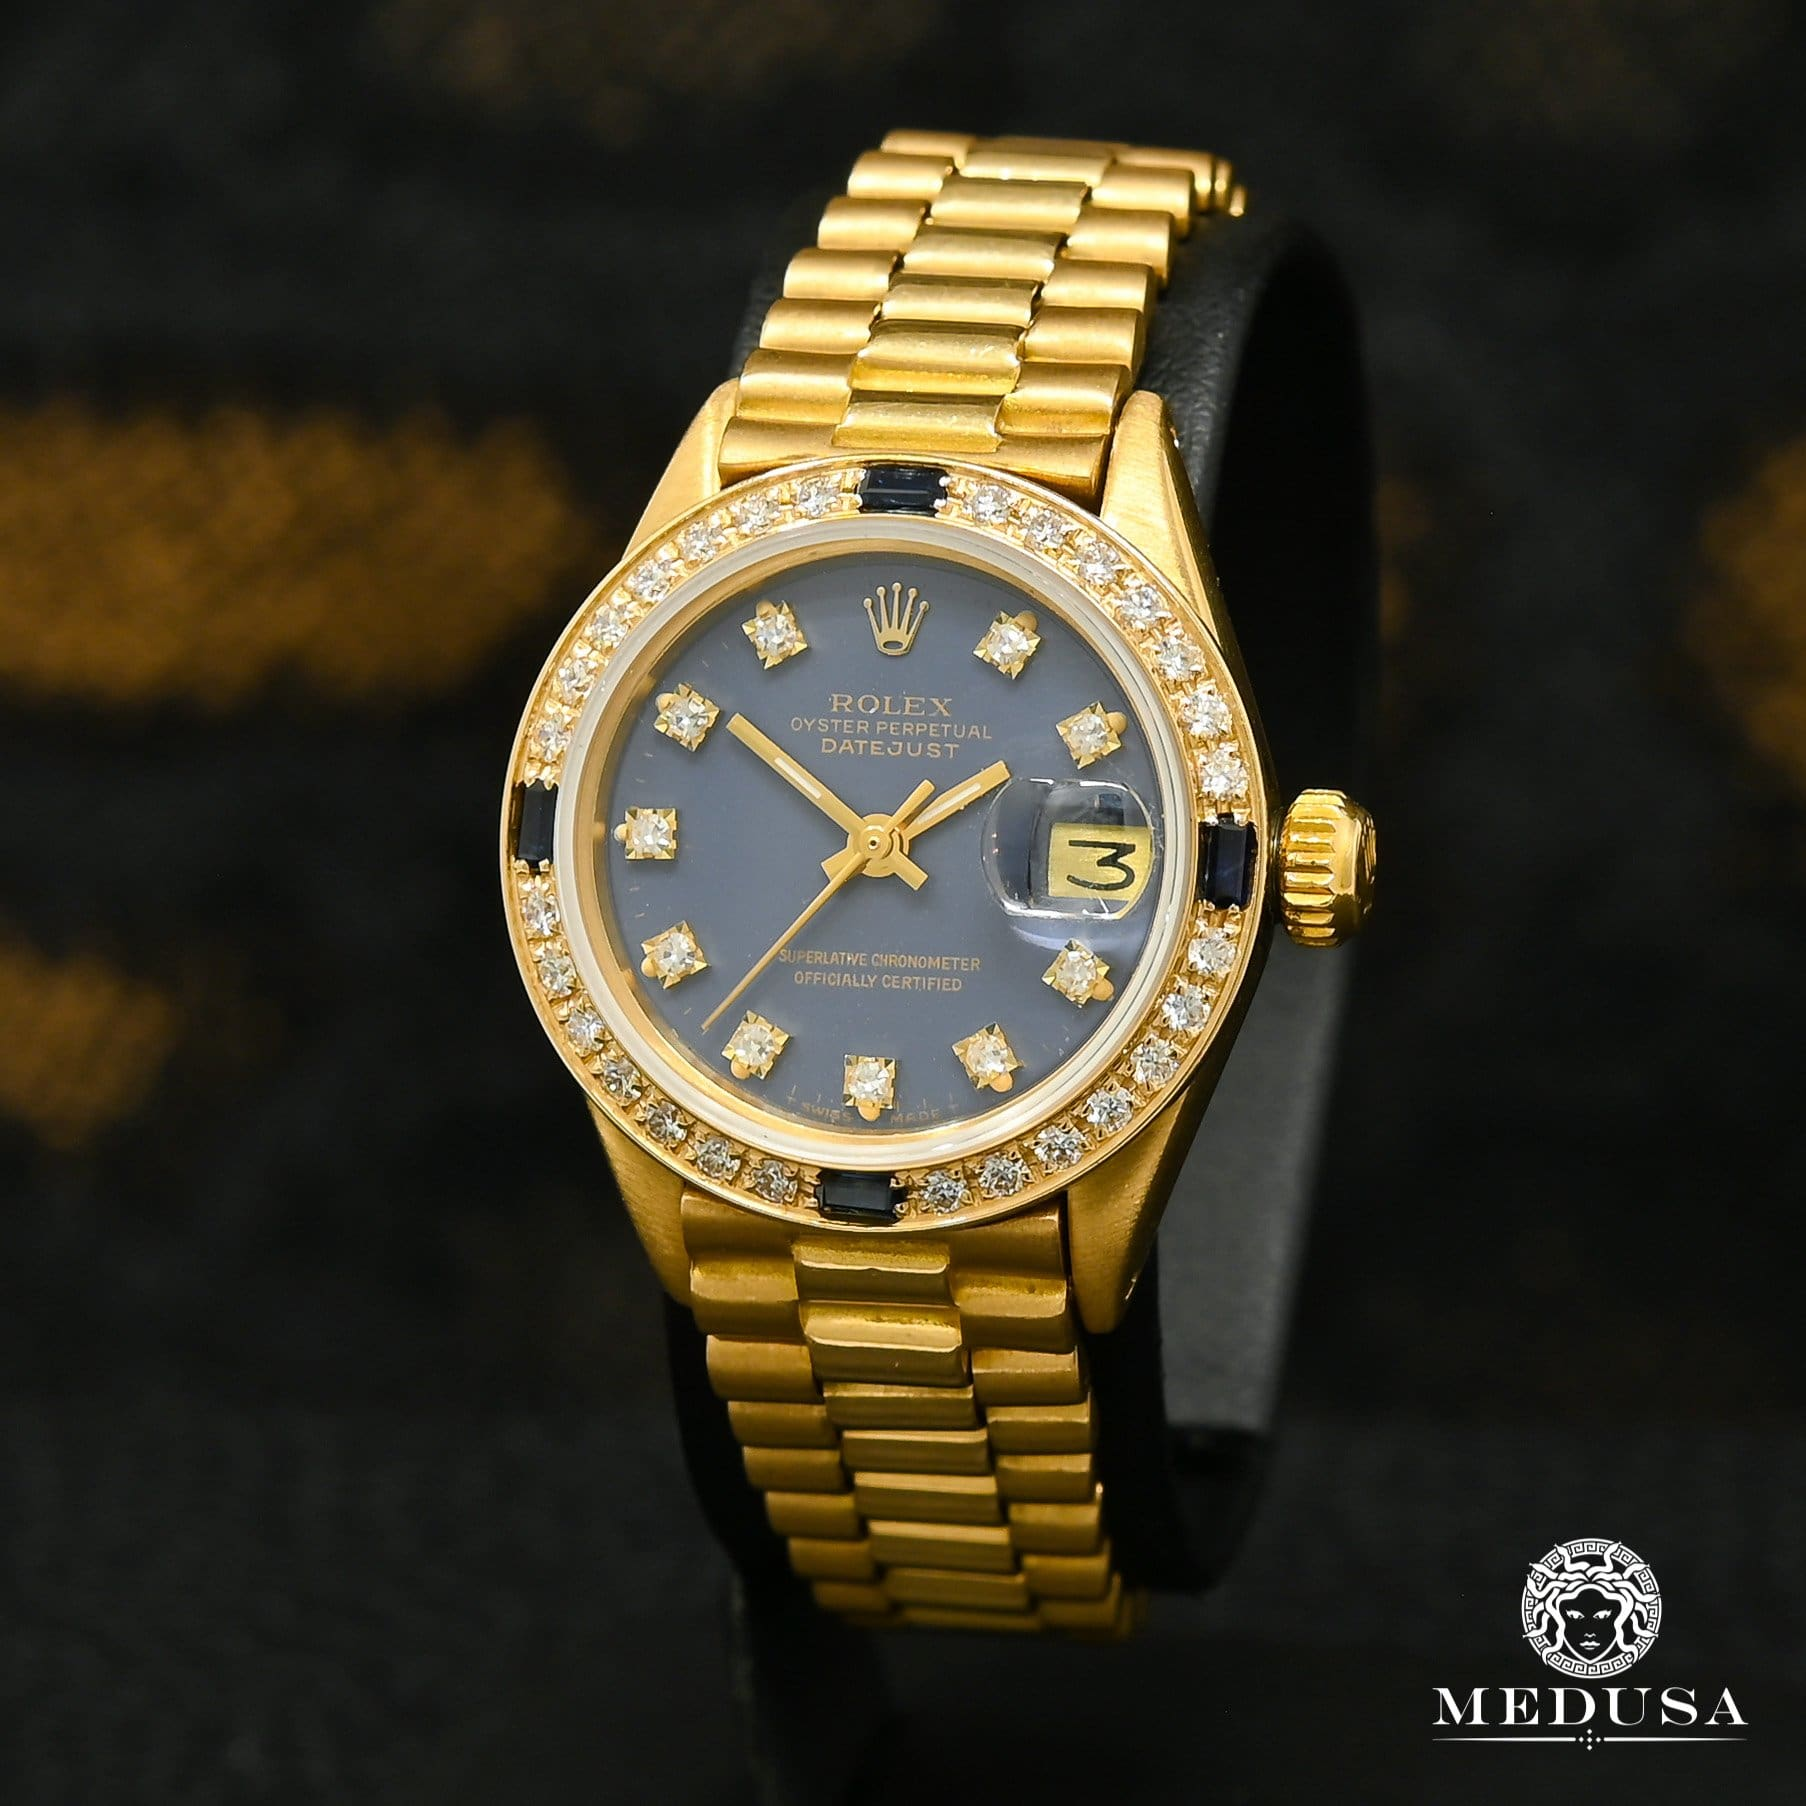 Rolex watch | Rolex President Datejust 26mm Woman Watch - Blue Yellow Gold